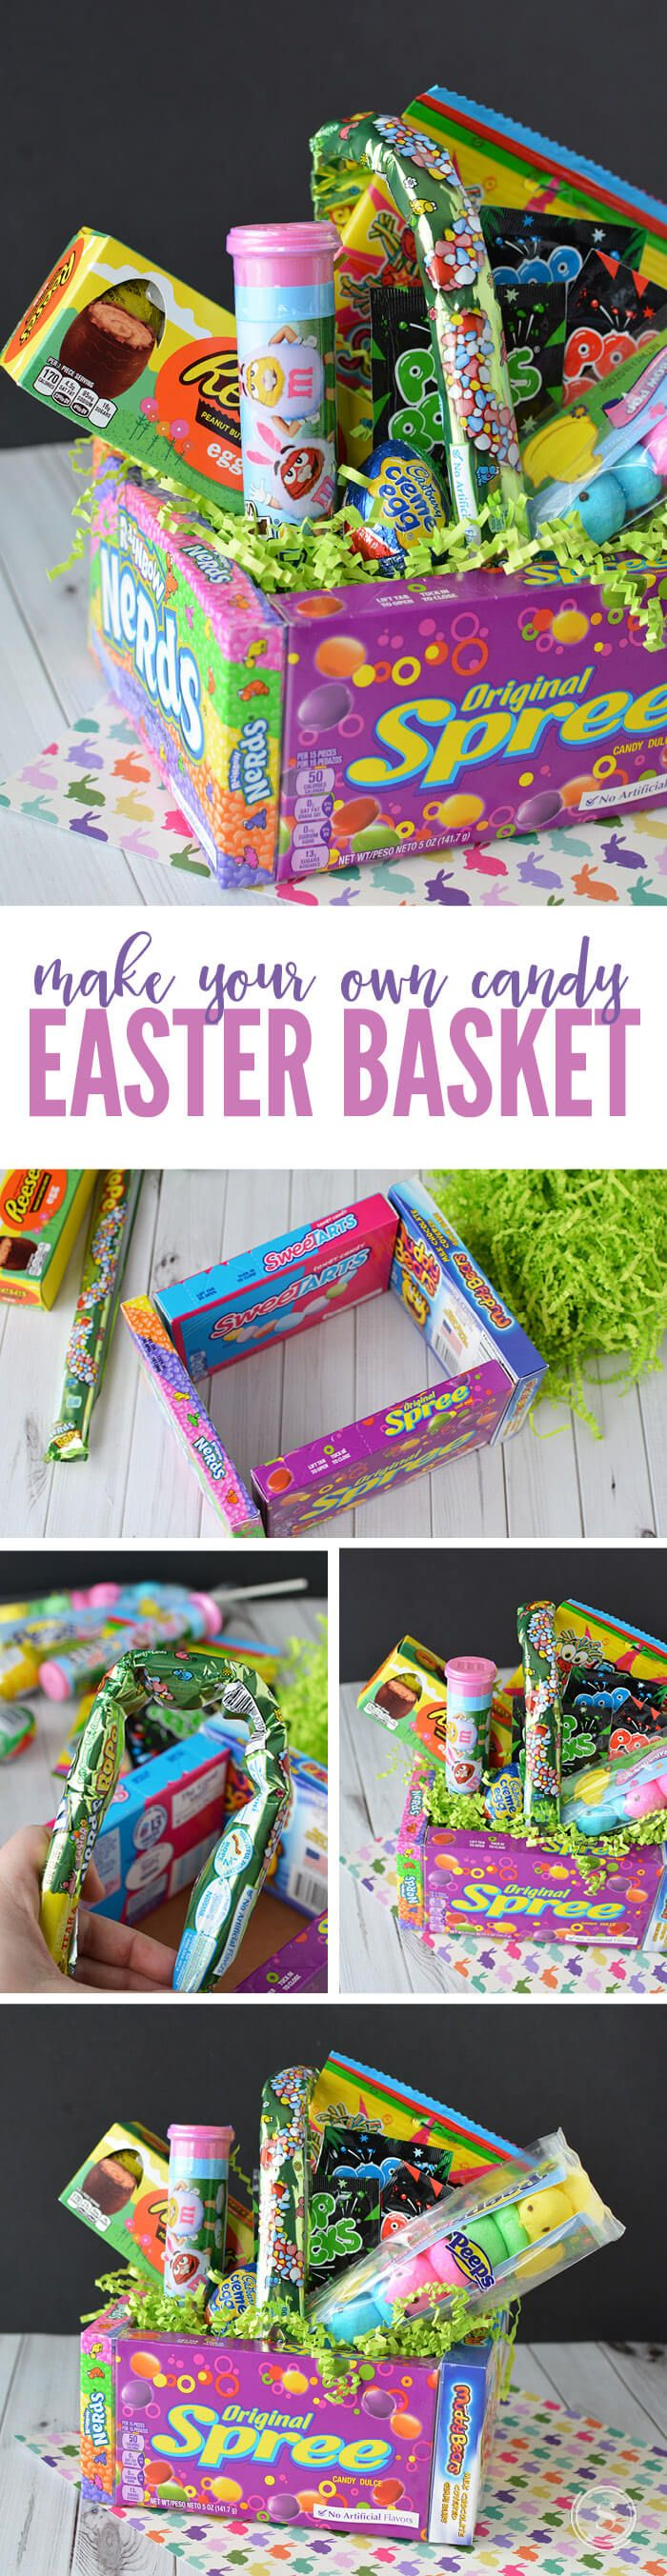 Diy candy easter basket an easy and creative way to make a fun easy easter idea for teachers friends or kids create and fill your diy easter basket with sweets and treats negle Image collections